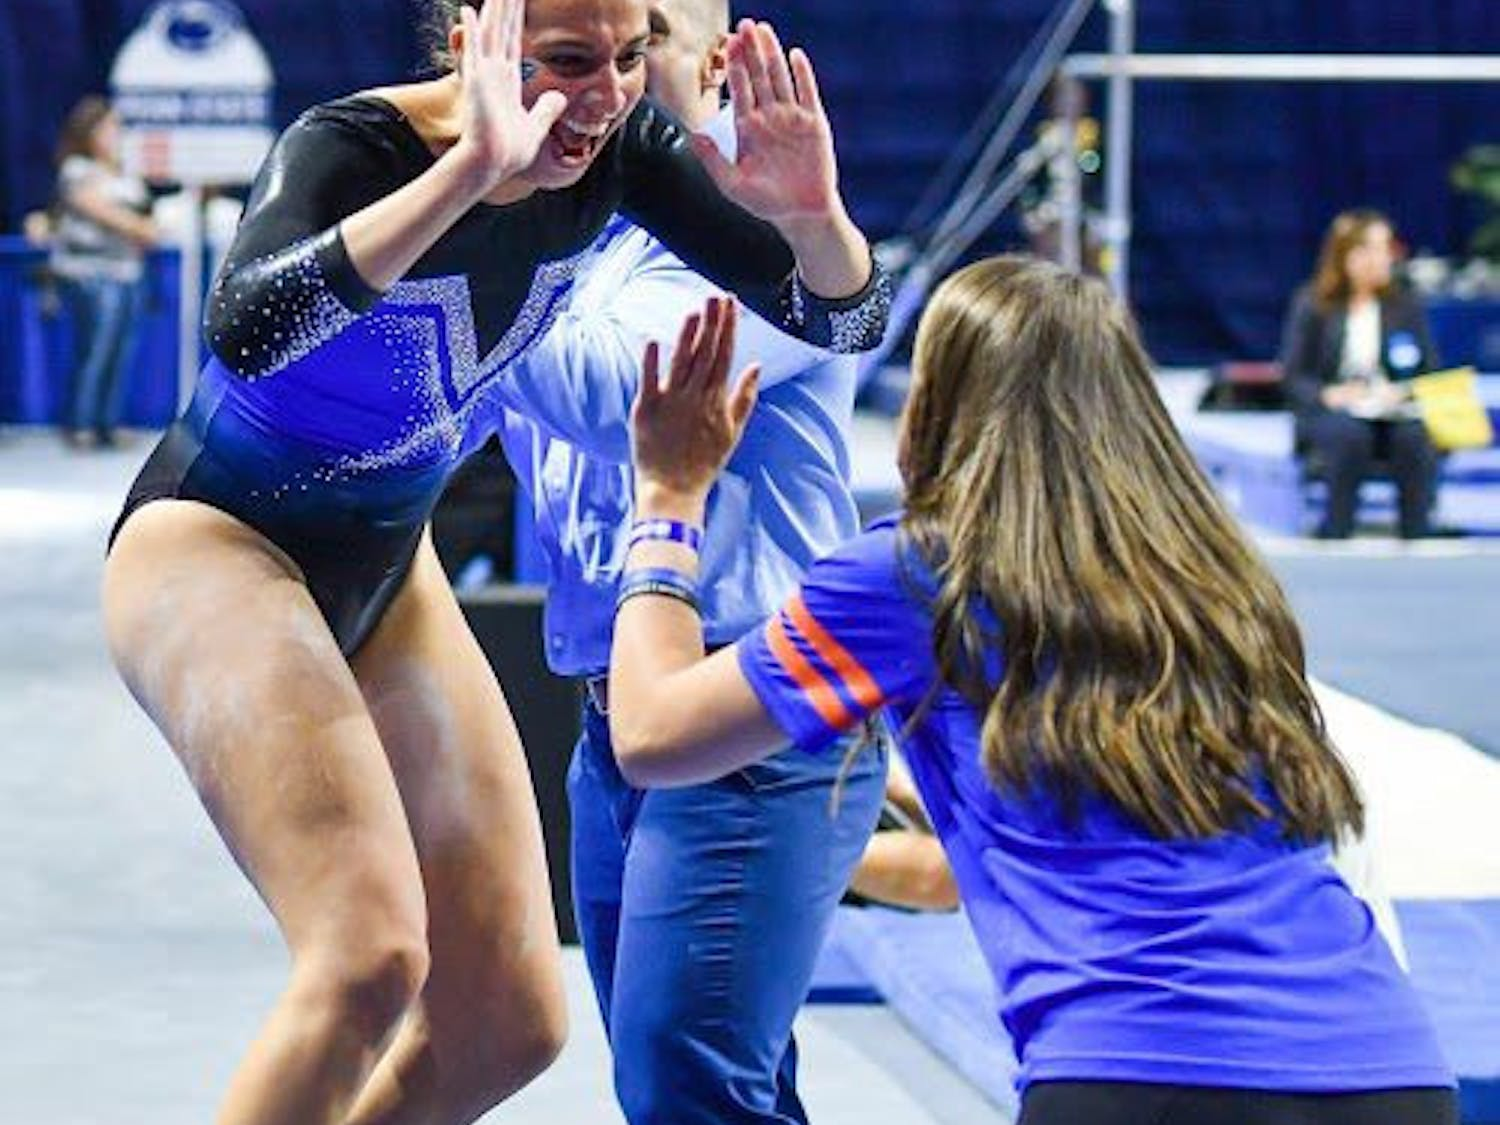 UF gymnast Rachel Slocum celebrates during the NCAA Gainesville Regional on April 1, 2017, in the O'Connell Center.